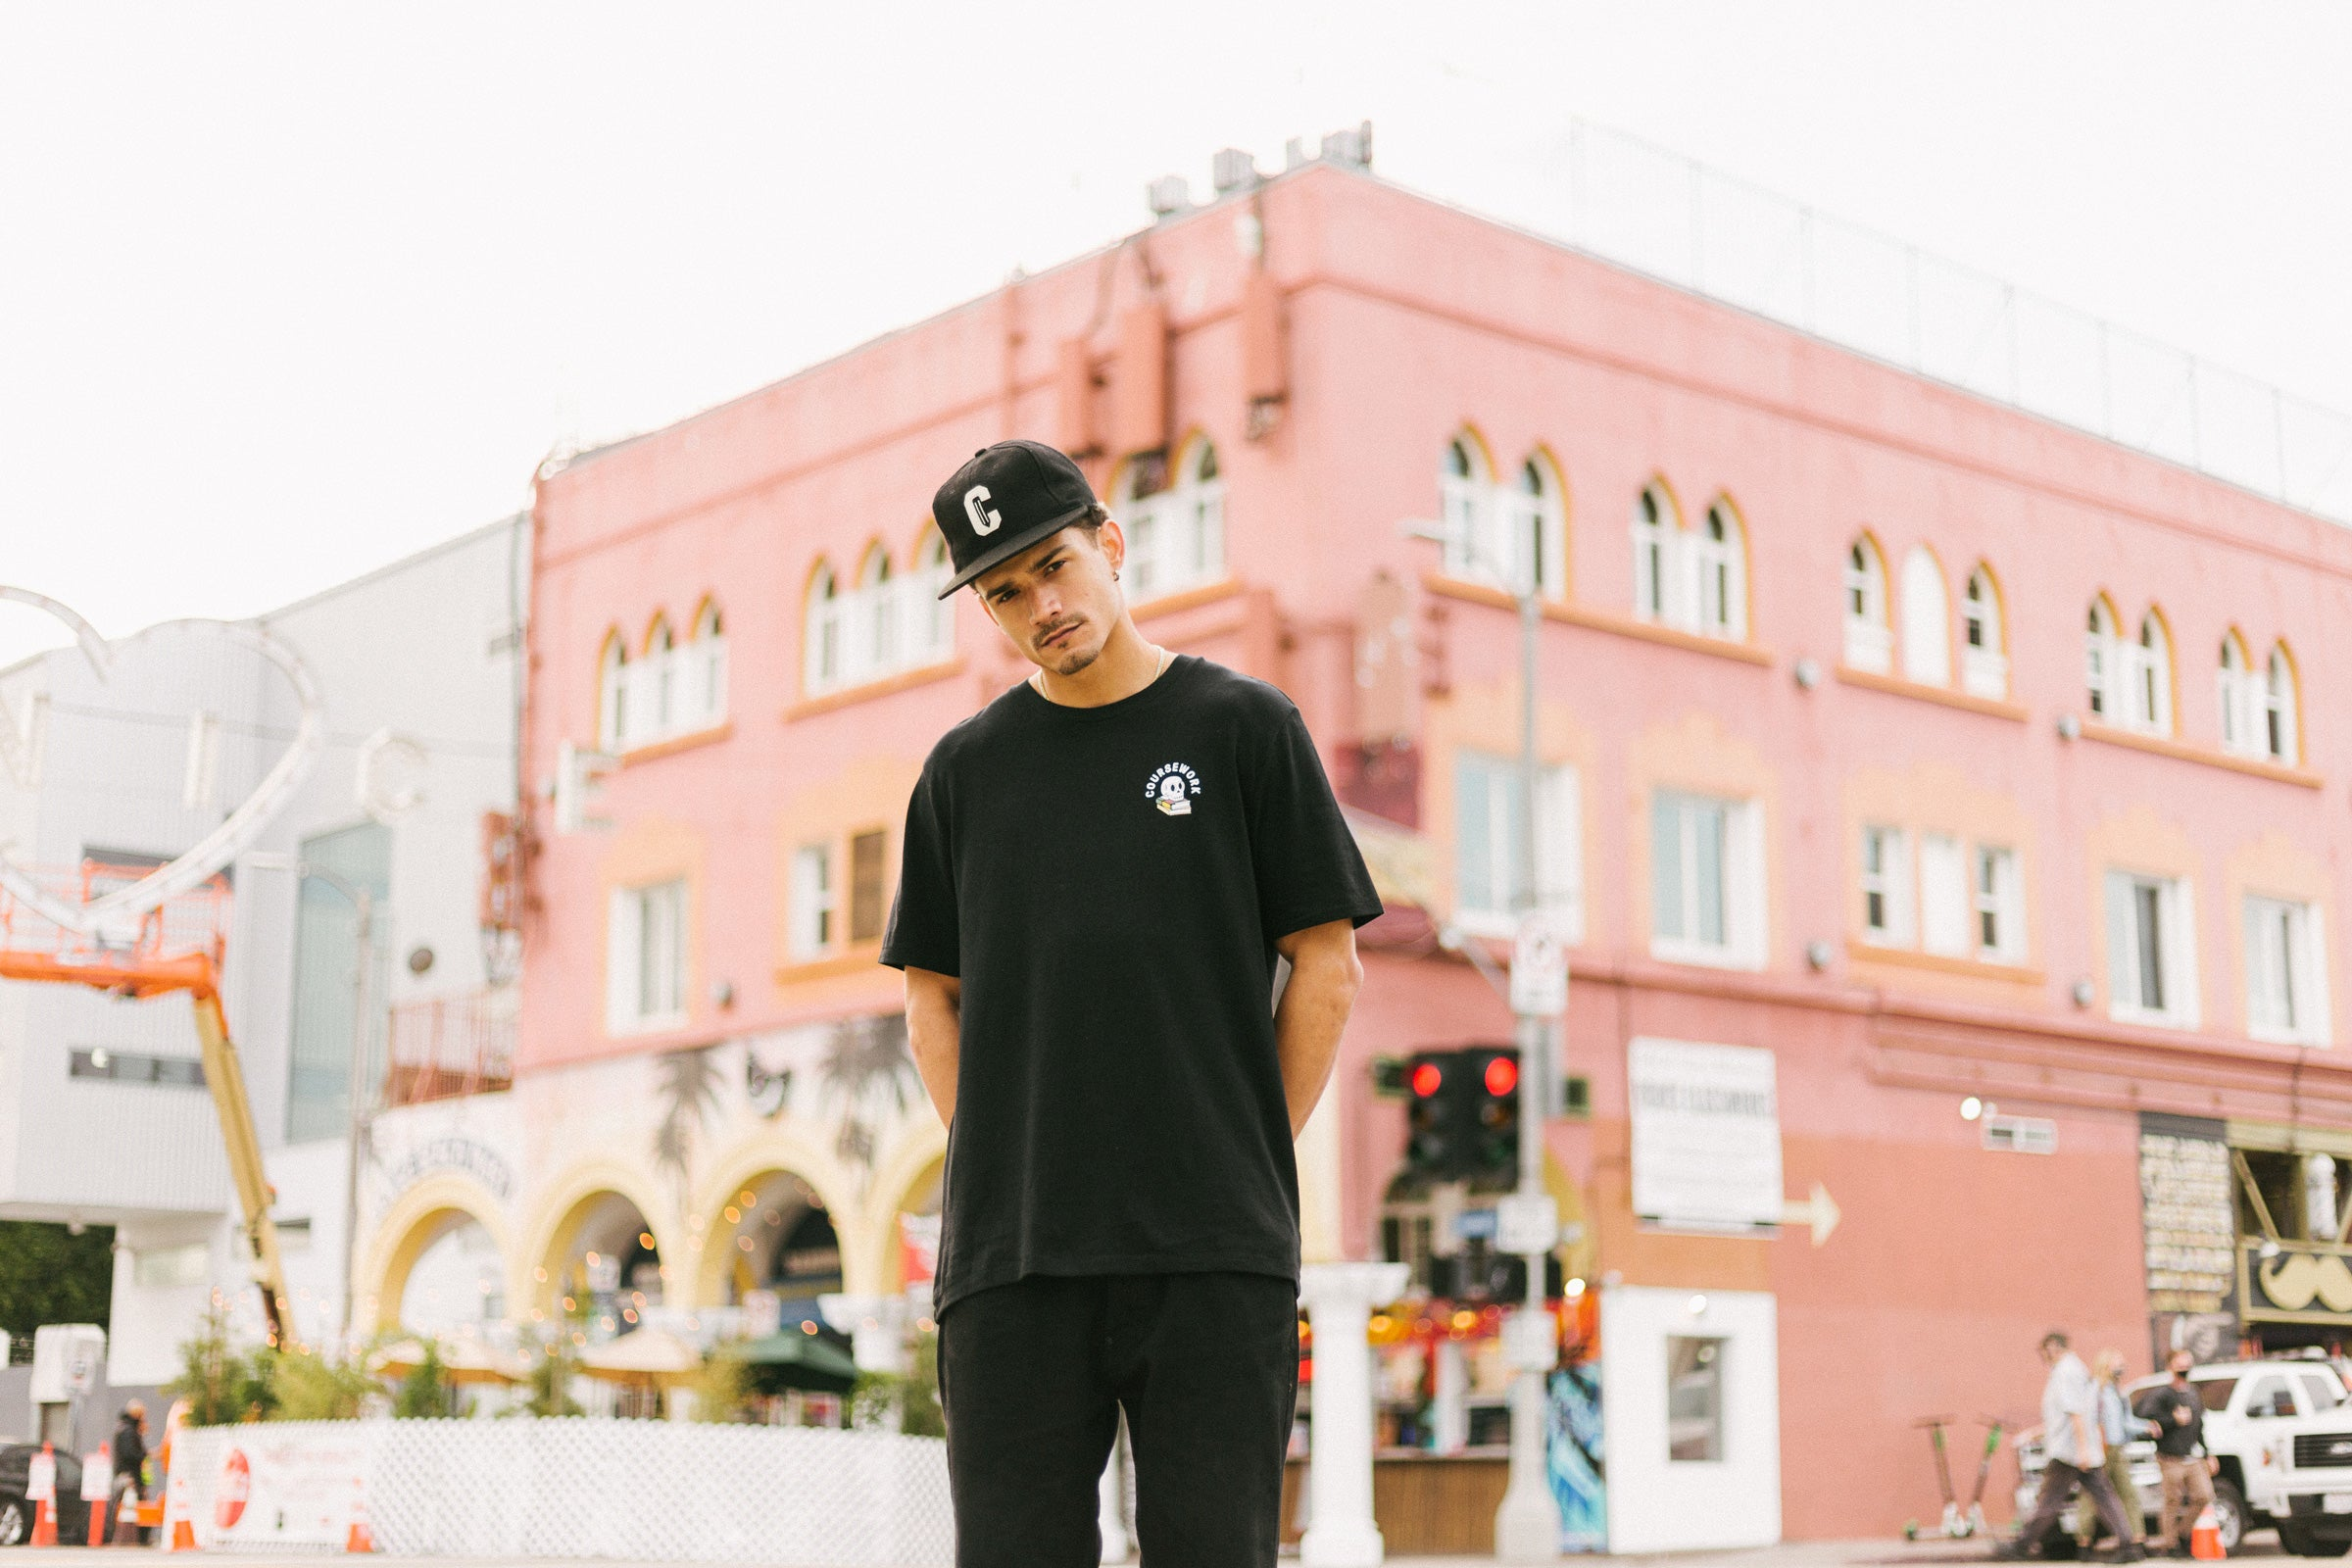 Model wearing the Ebbets Wool C Cap in black and the Required Reading Tee in black while standing on the sidewalk of an intersection.